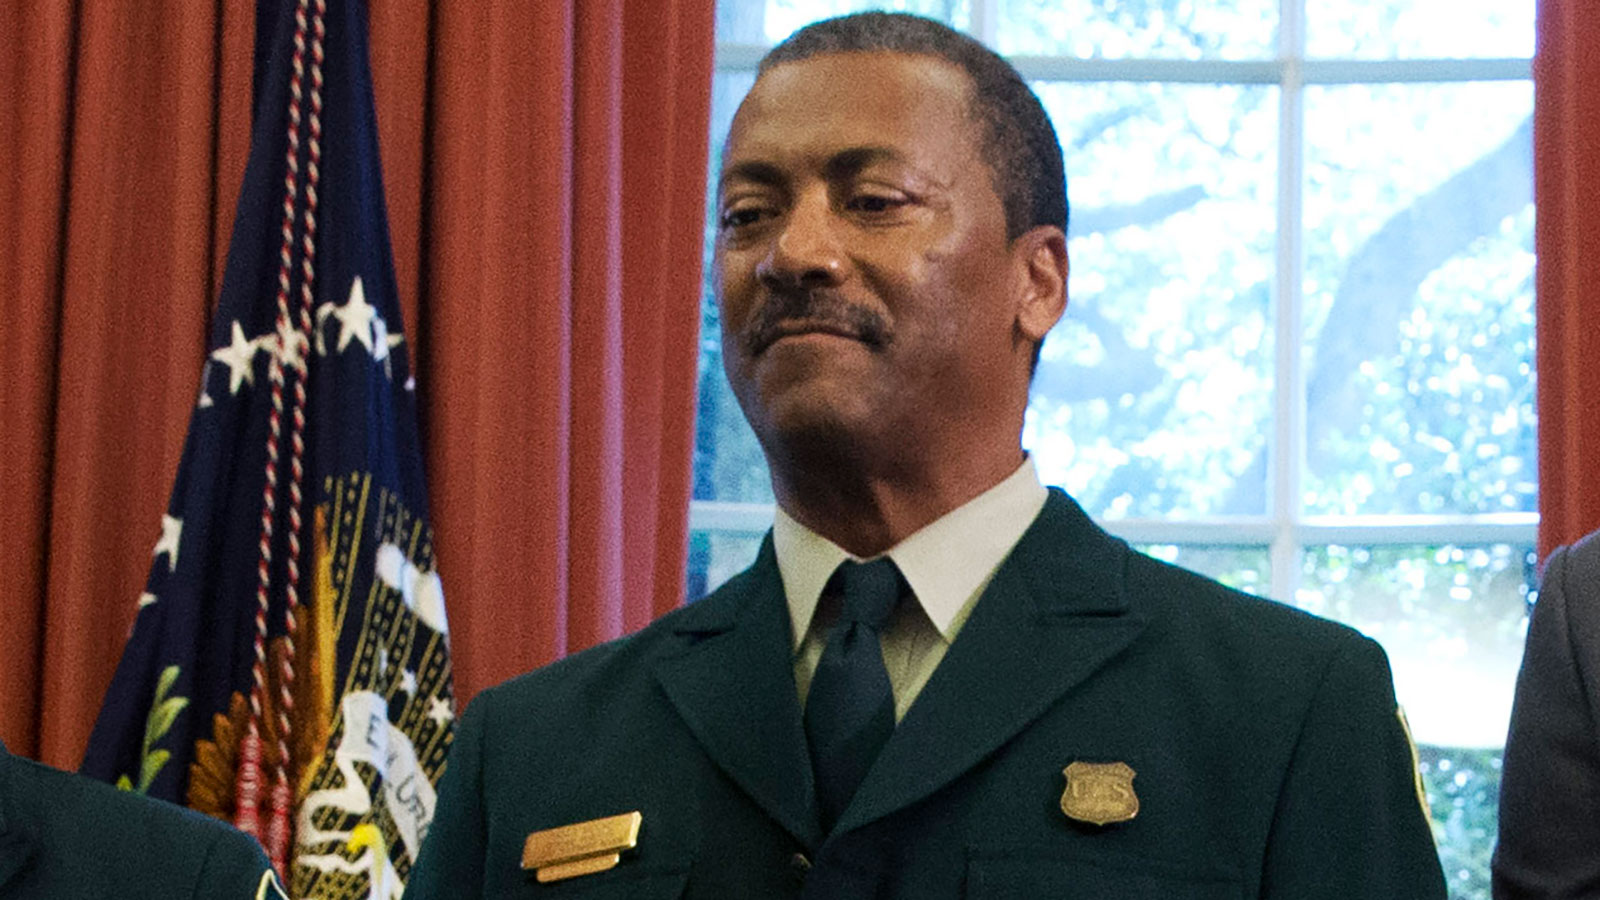 Randy Moore to become US Forest Service's first African American chief